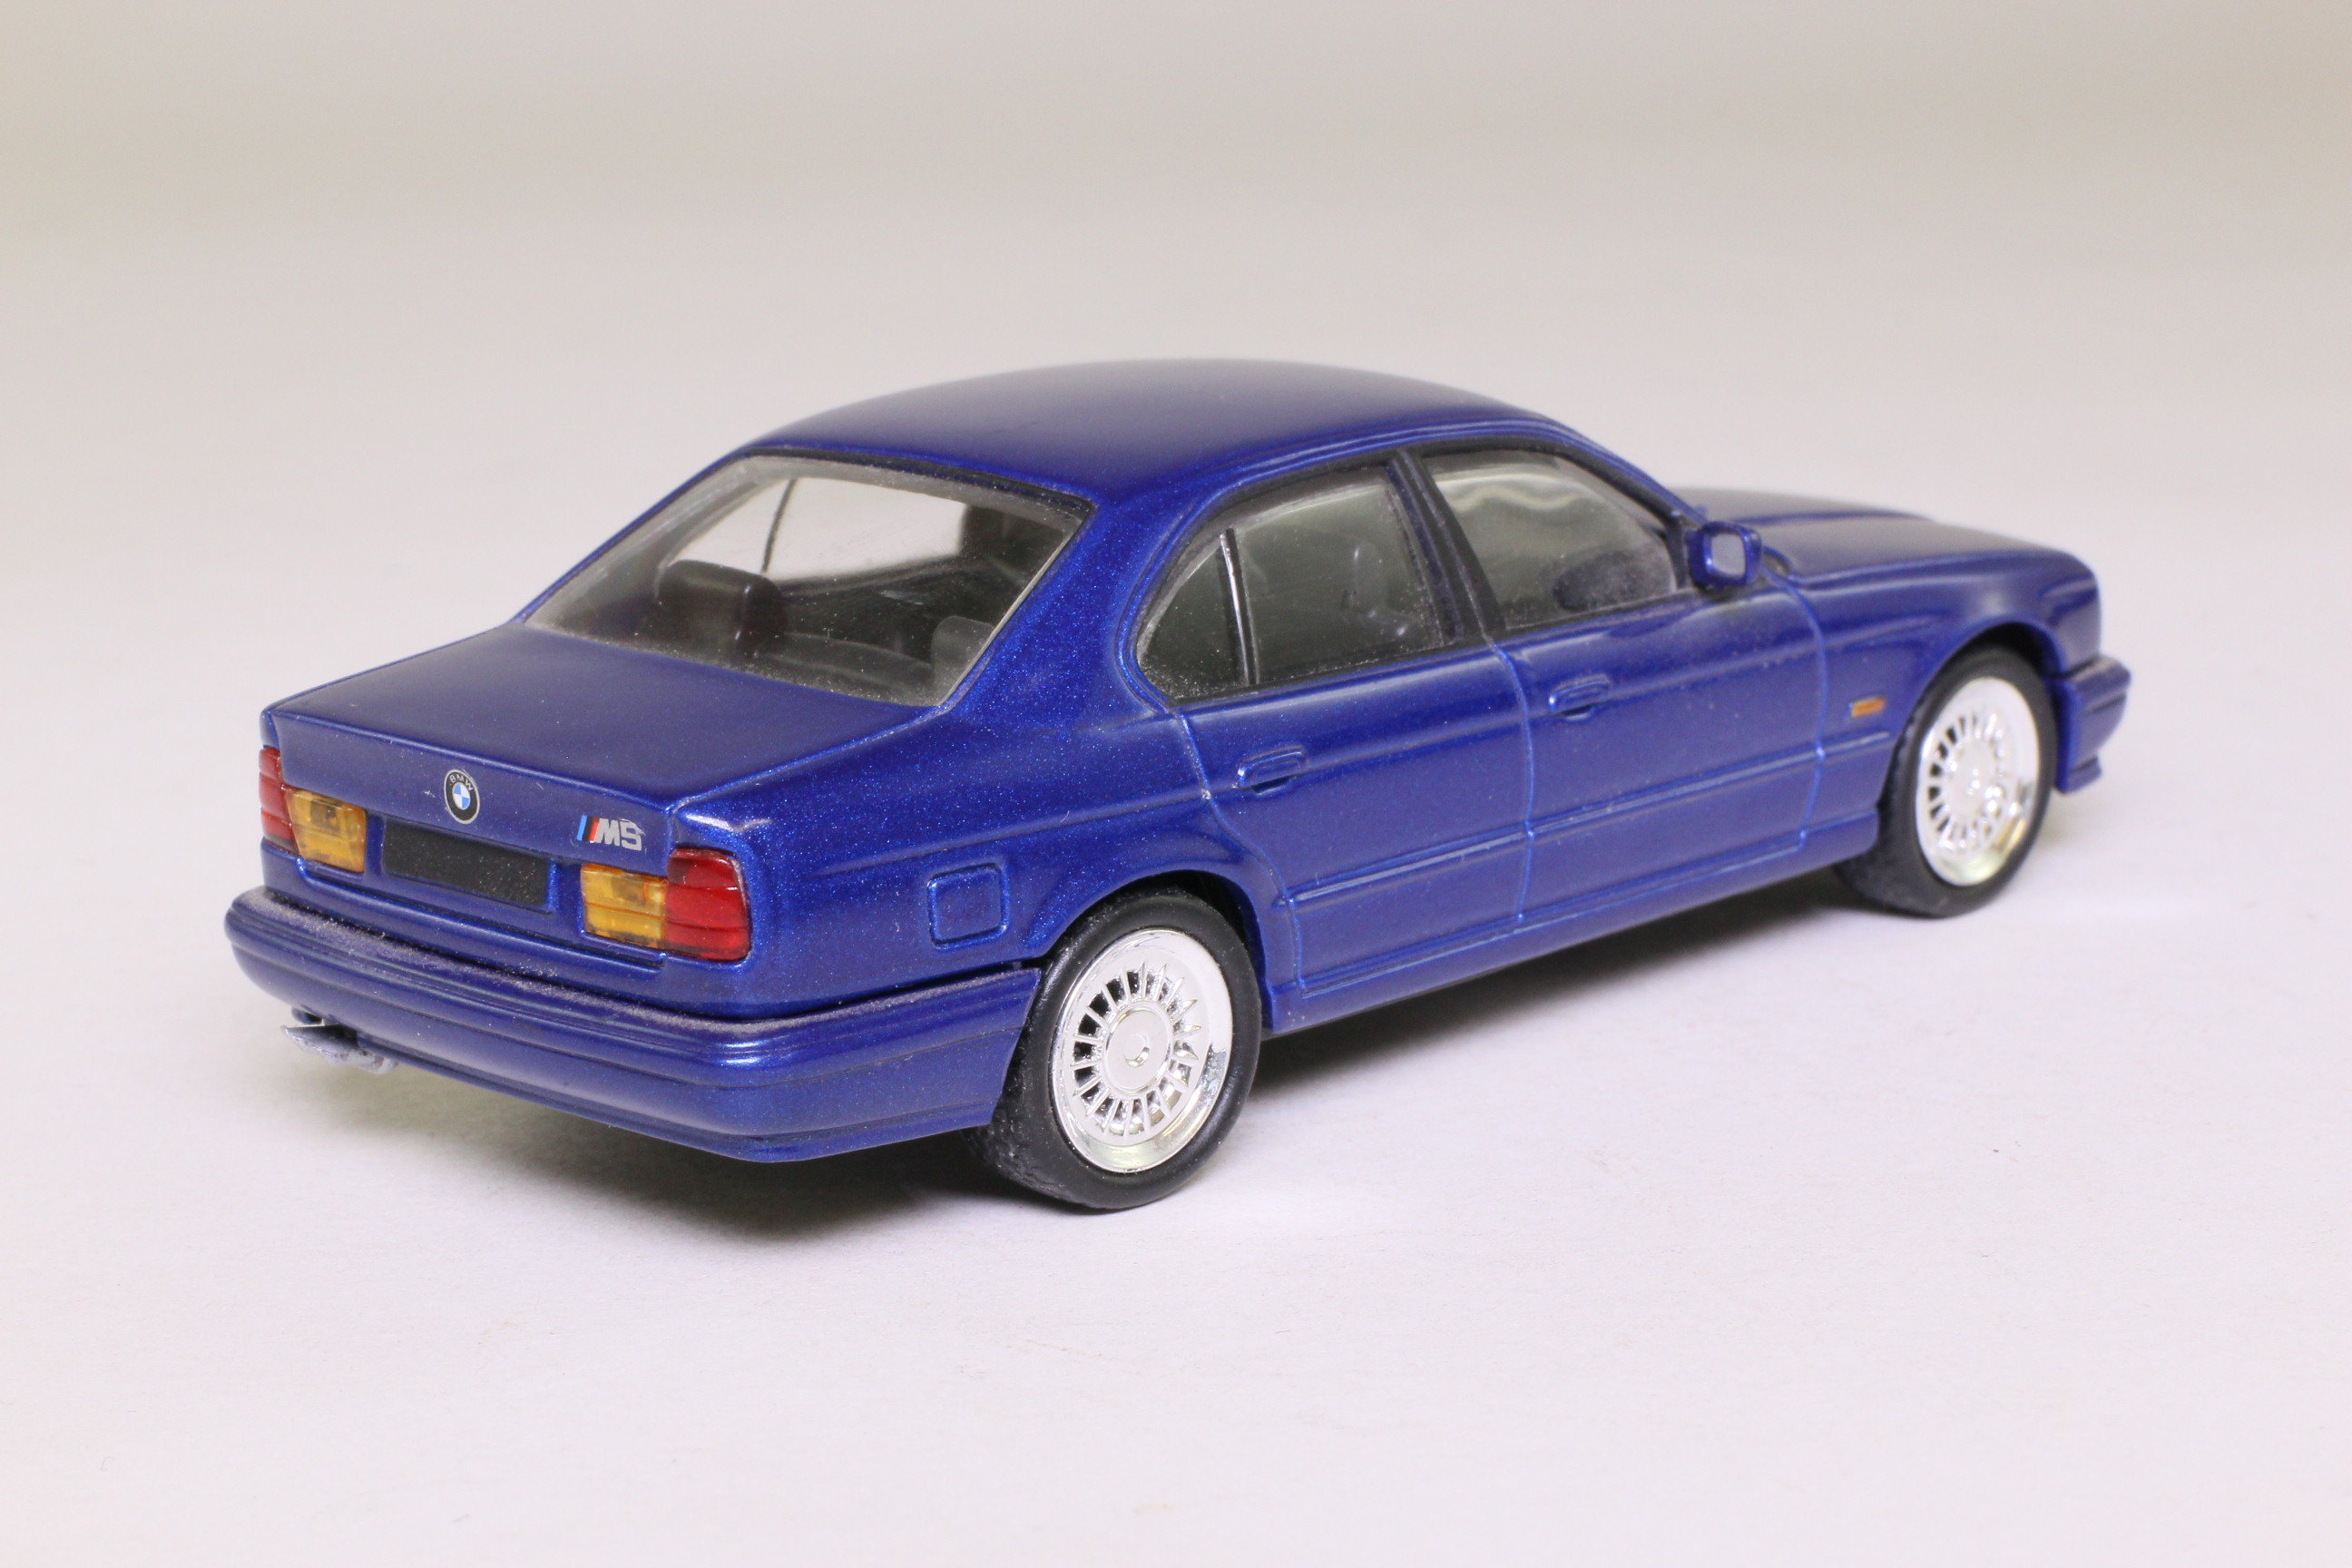 del prado 1989 bmw m5 e34 deep blue 1 43 scale very good unboxed ebay. Black Bedroom Furniture Sets. Home Design Ideas